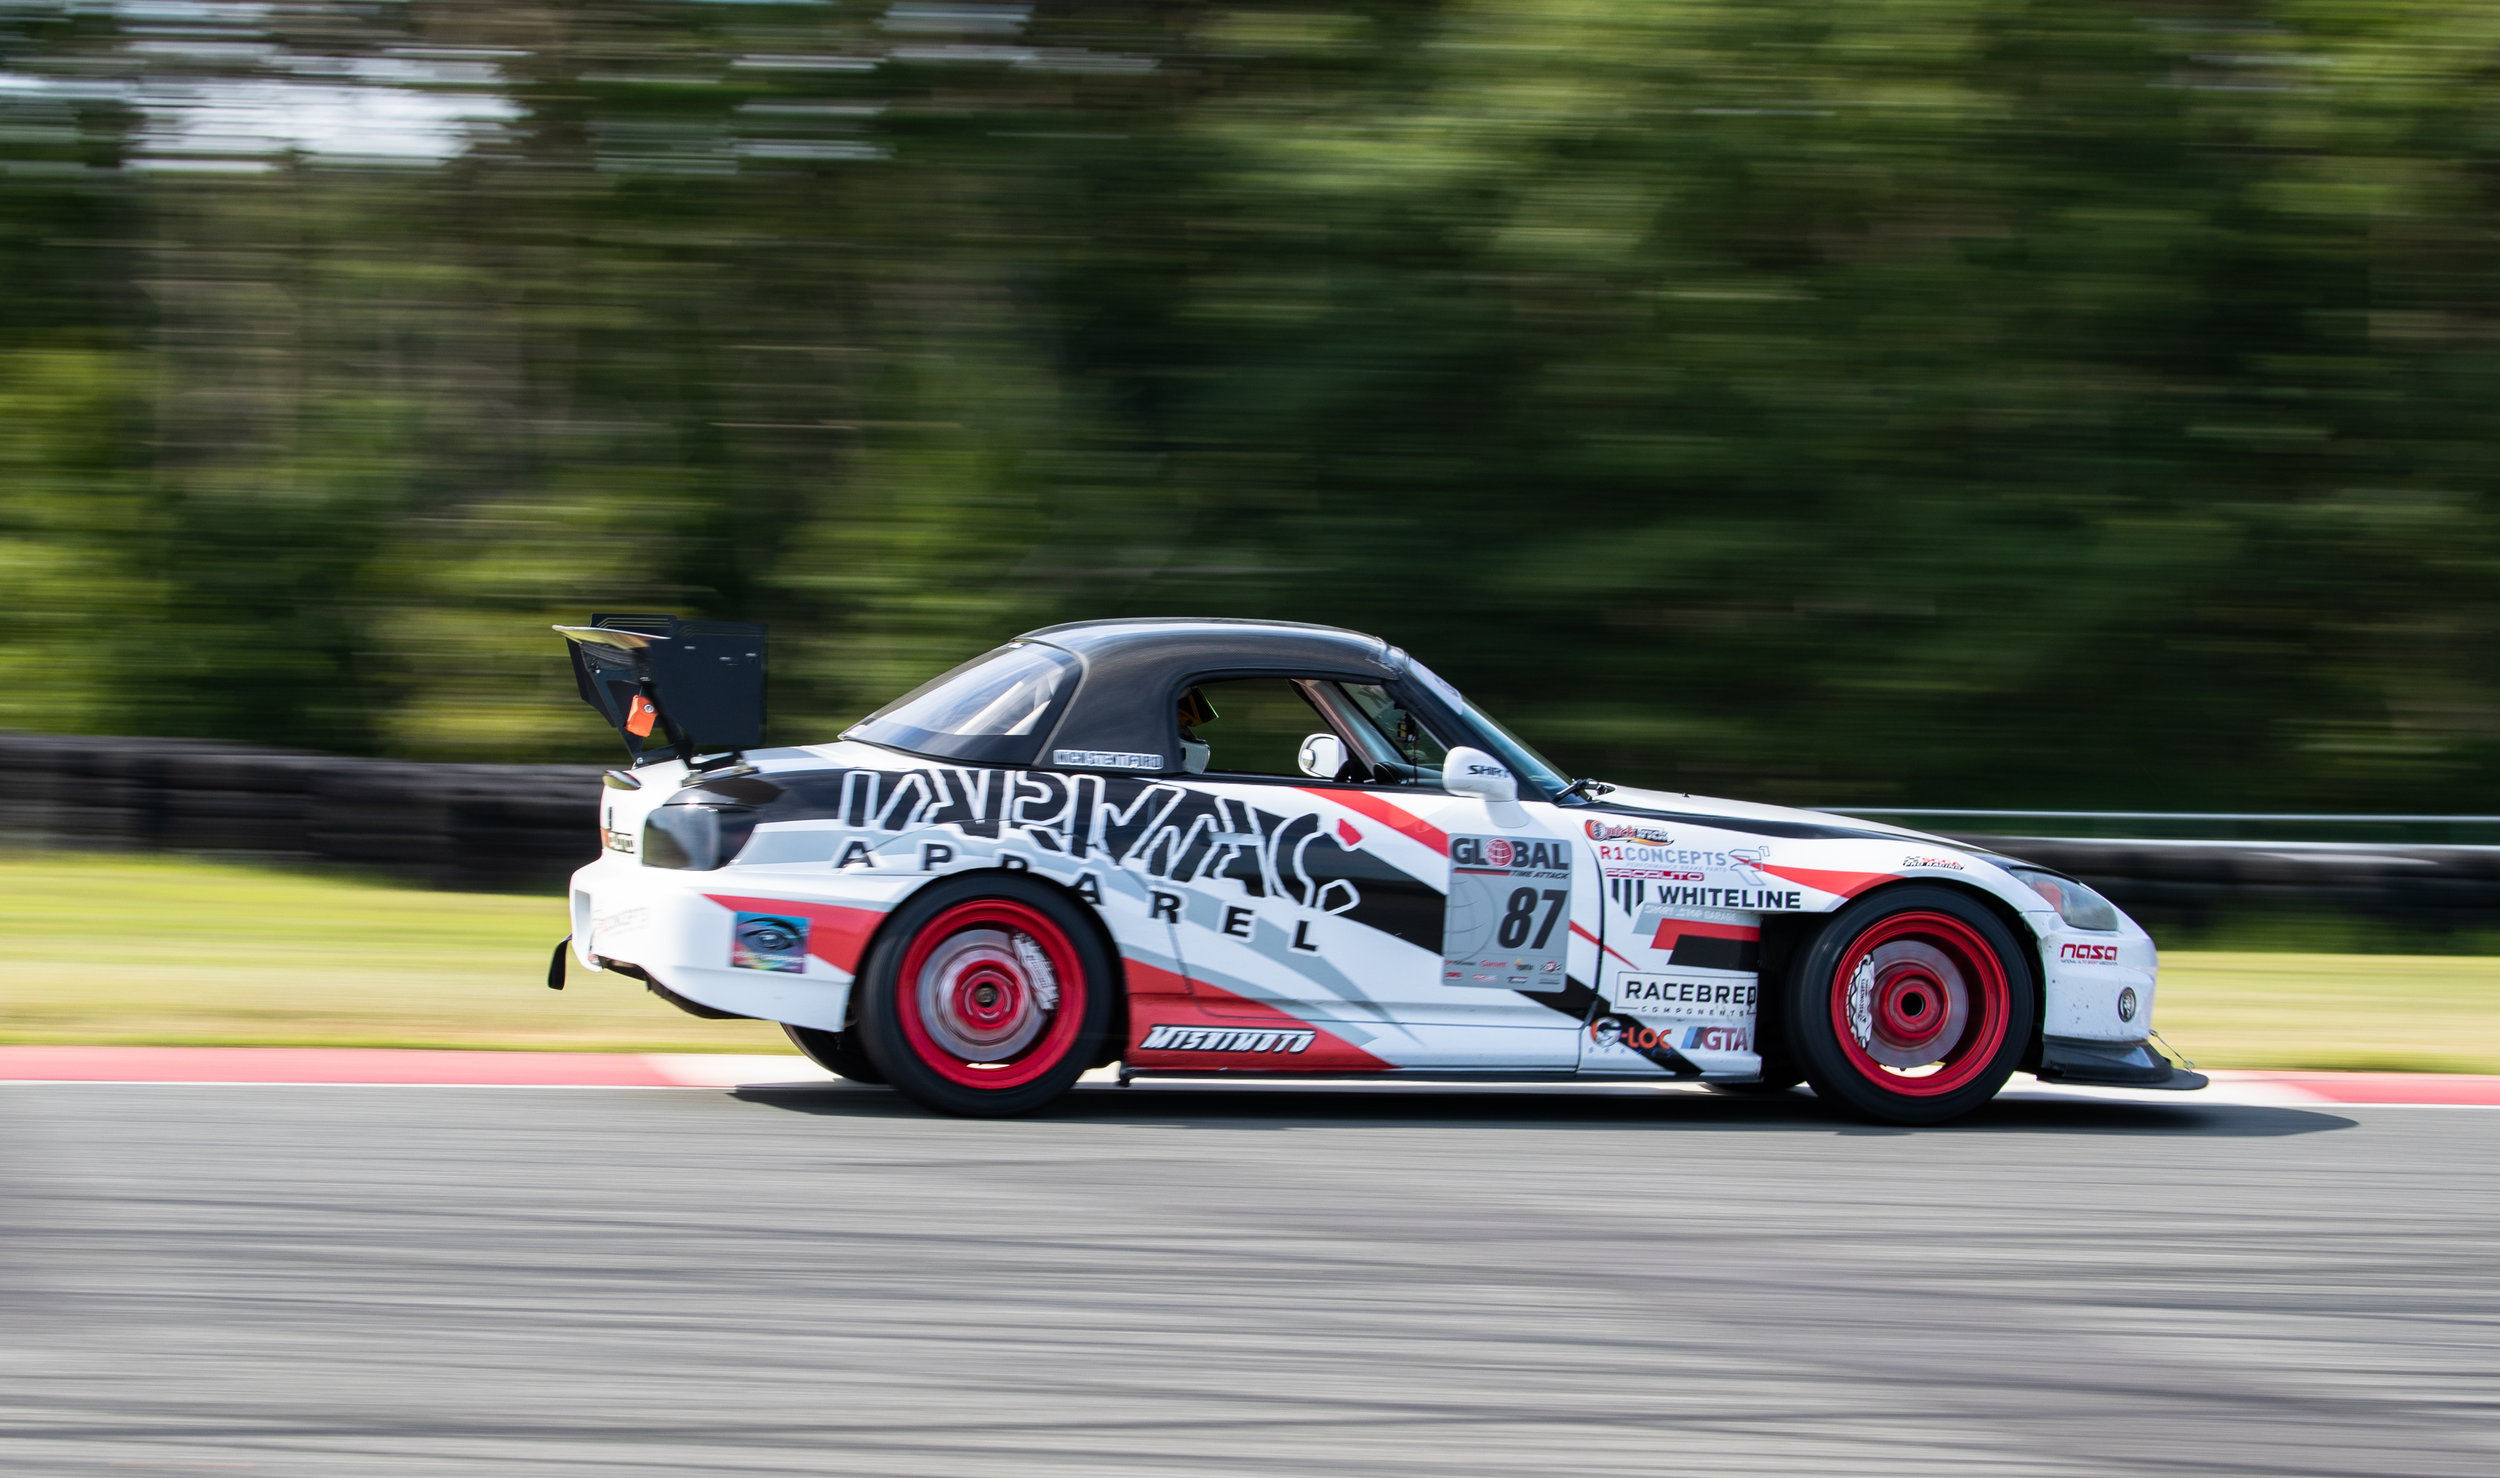 Nick Stentiford piloting his Honda S2000 around the Lightning Circuit. Stentiford drove his S2000 from Colorado to NJ in it's race ready state to participate in this year's GTA event.